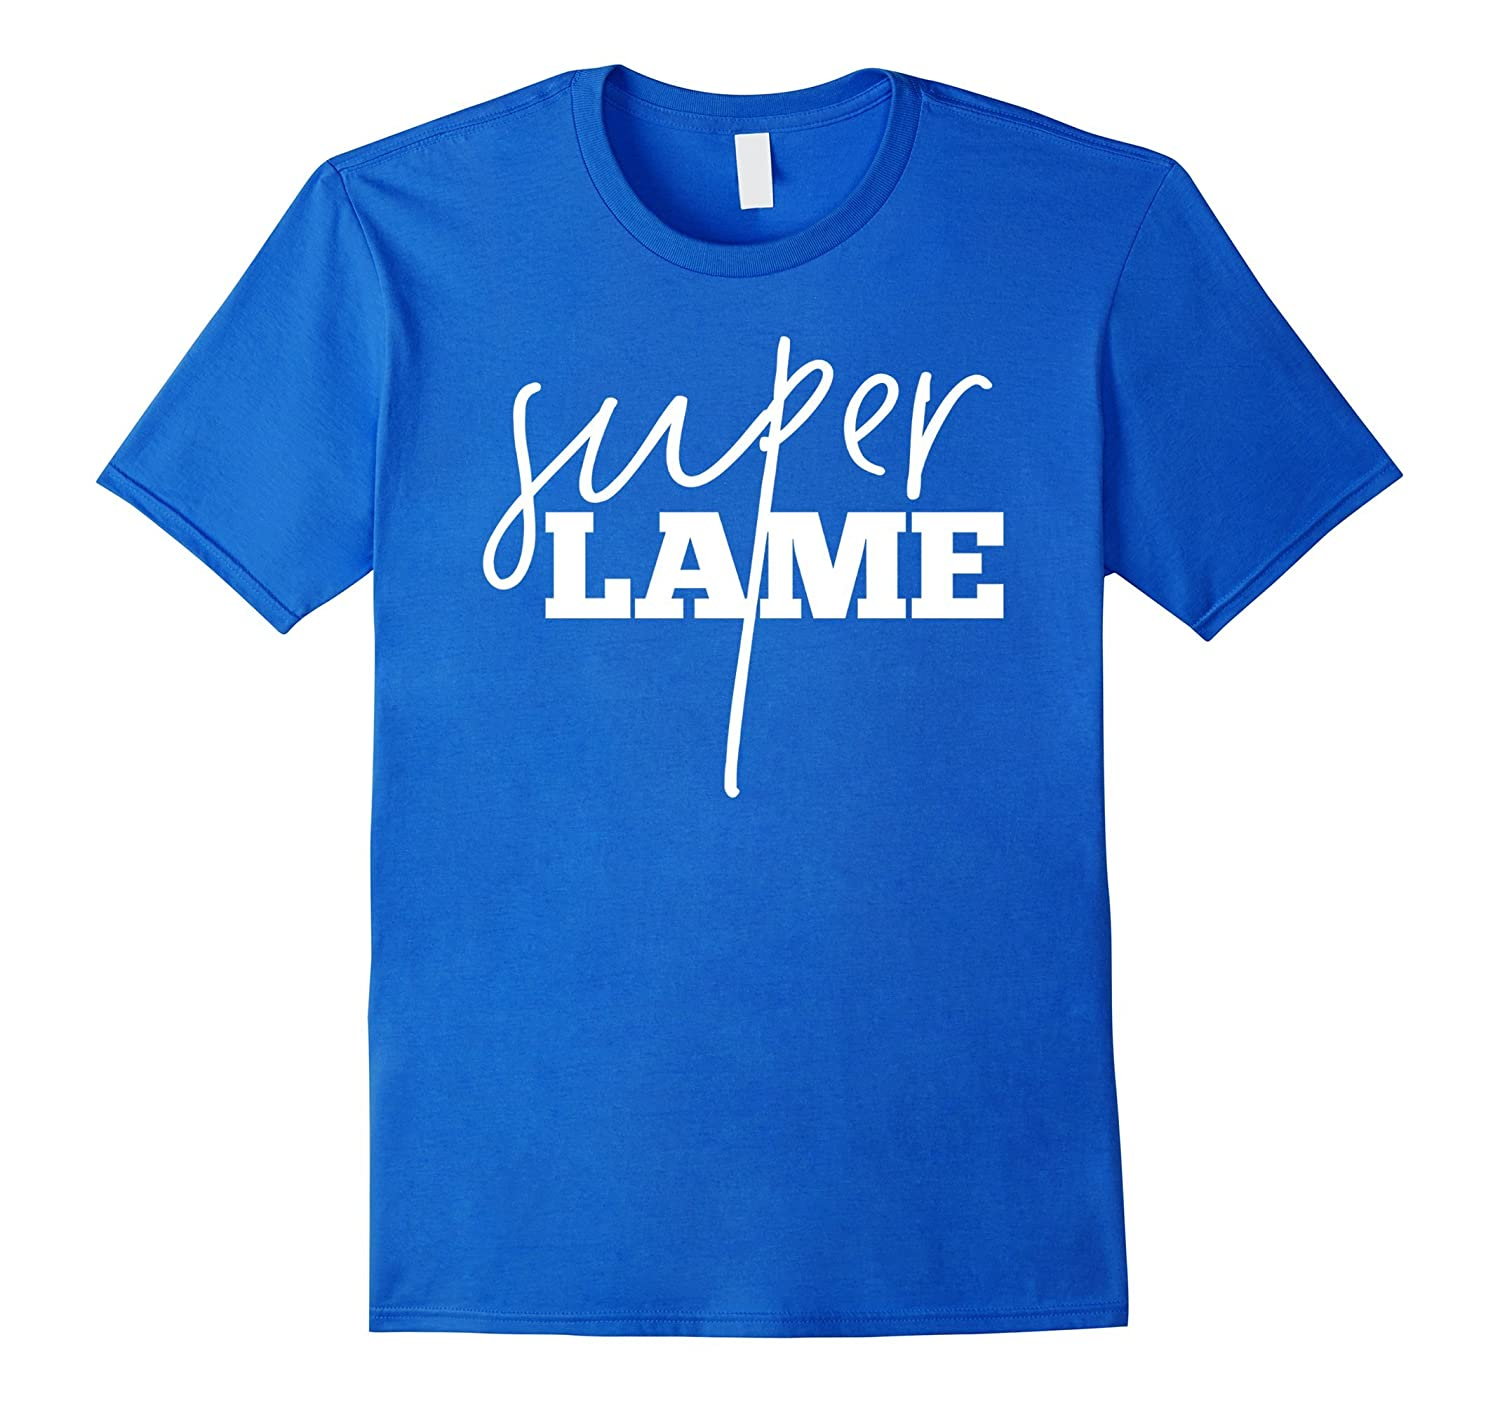 Super Lame Hilarious Simple Sarcastic Bold Graphic Tee Shirt-TH